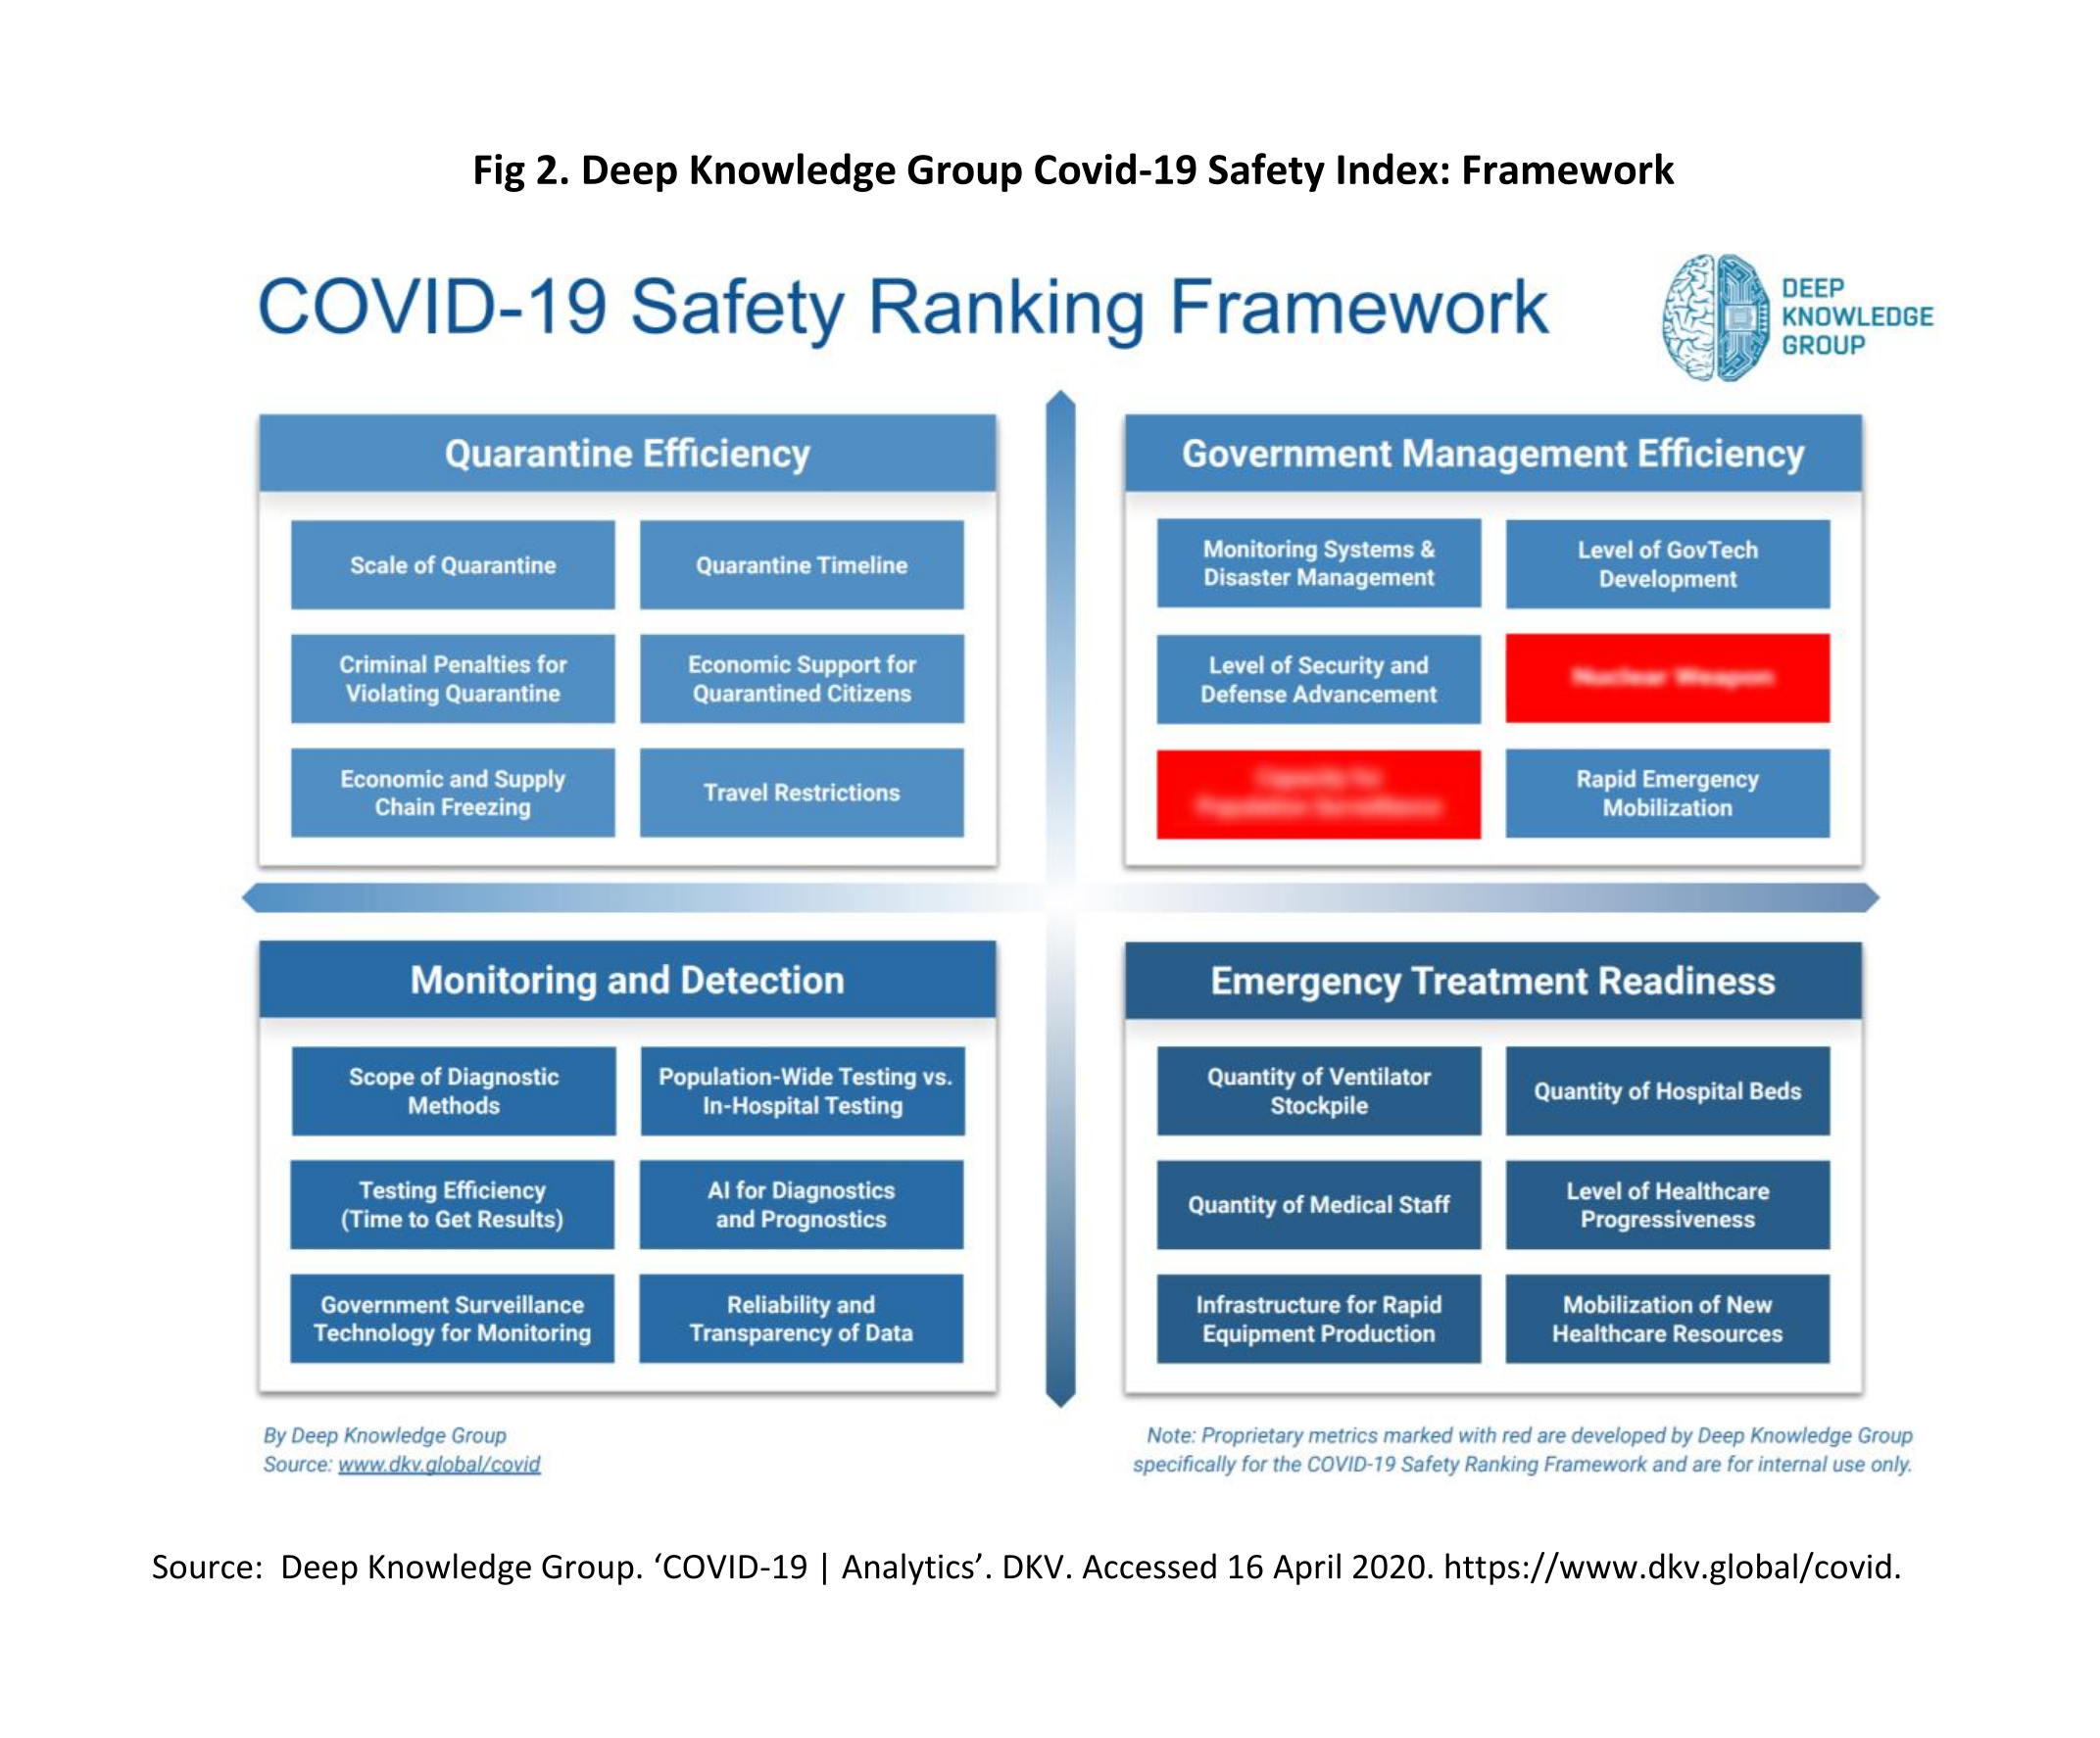 Deep Knowledge Group Covid-19 Safety Index: Framework